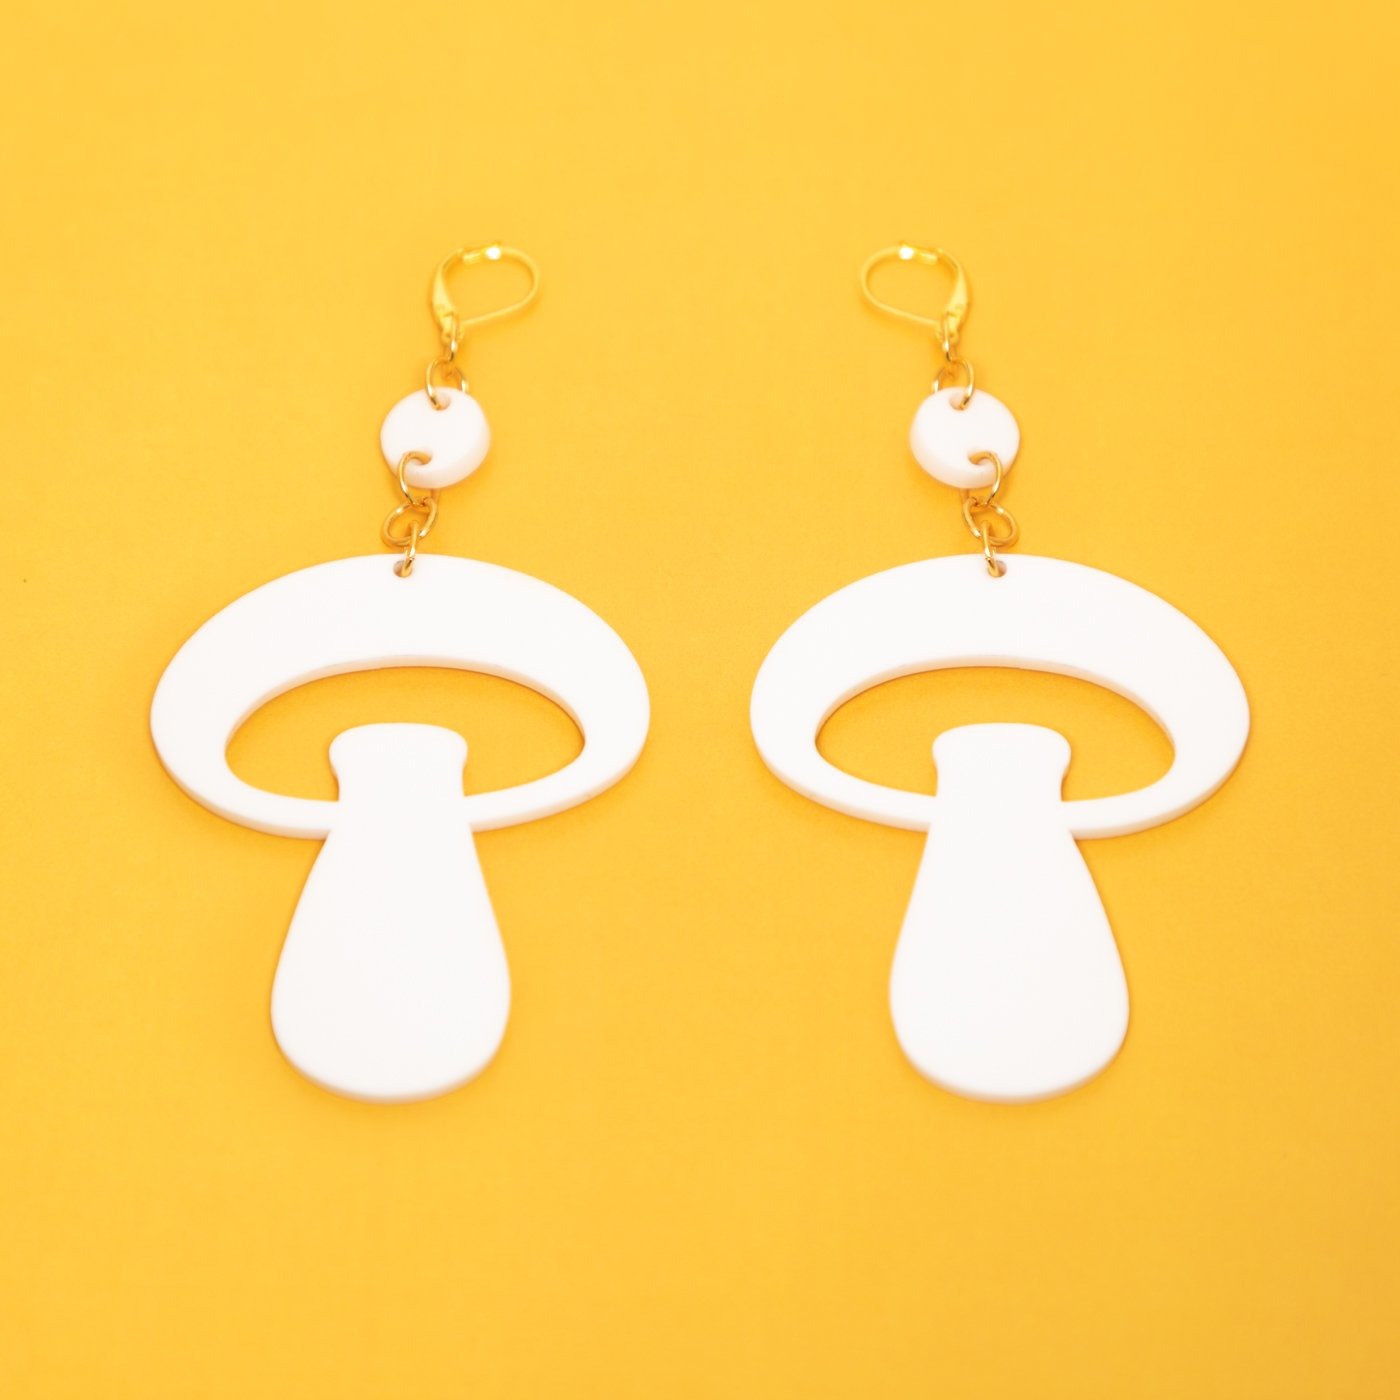 MindFlowers_Inner_Mushroom_Mega_White_Chain_Gold_Earring_1024x1024@2x.jpg